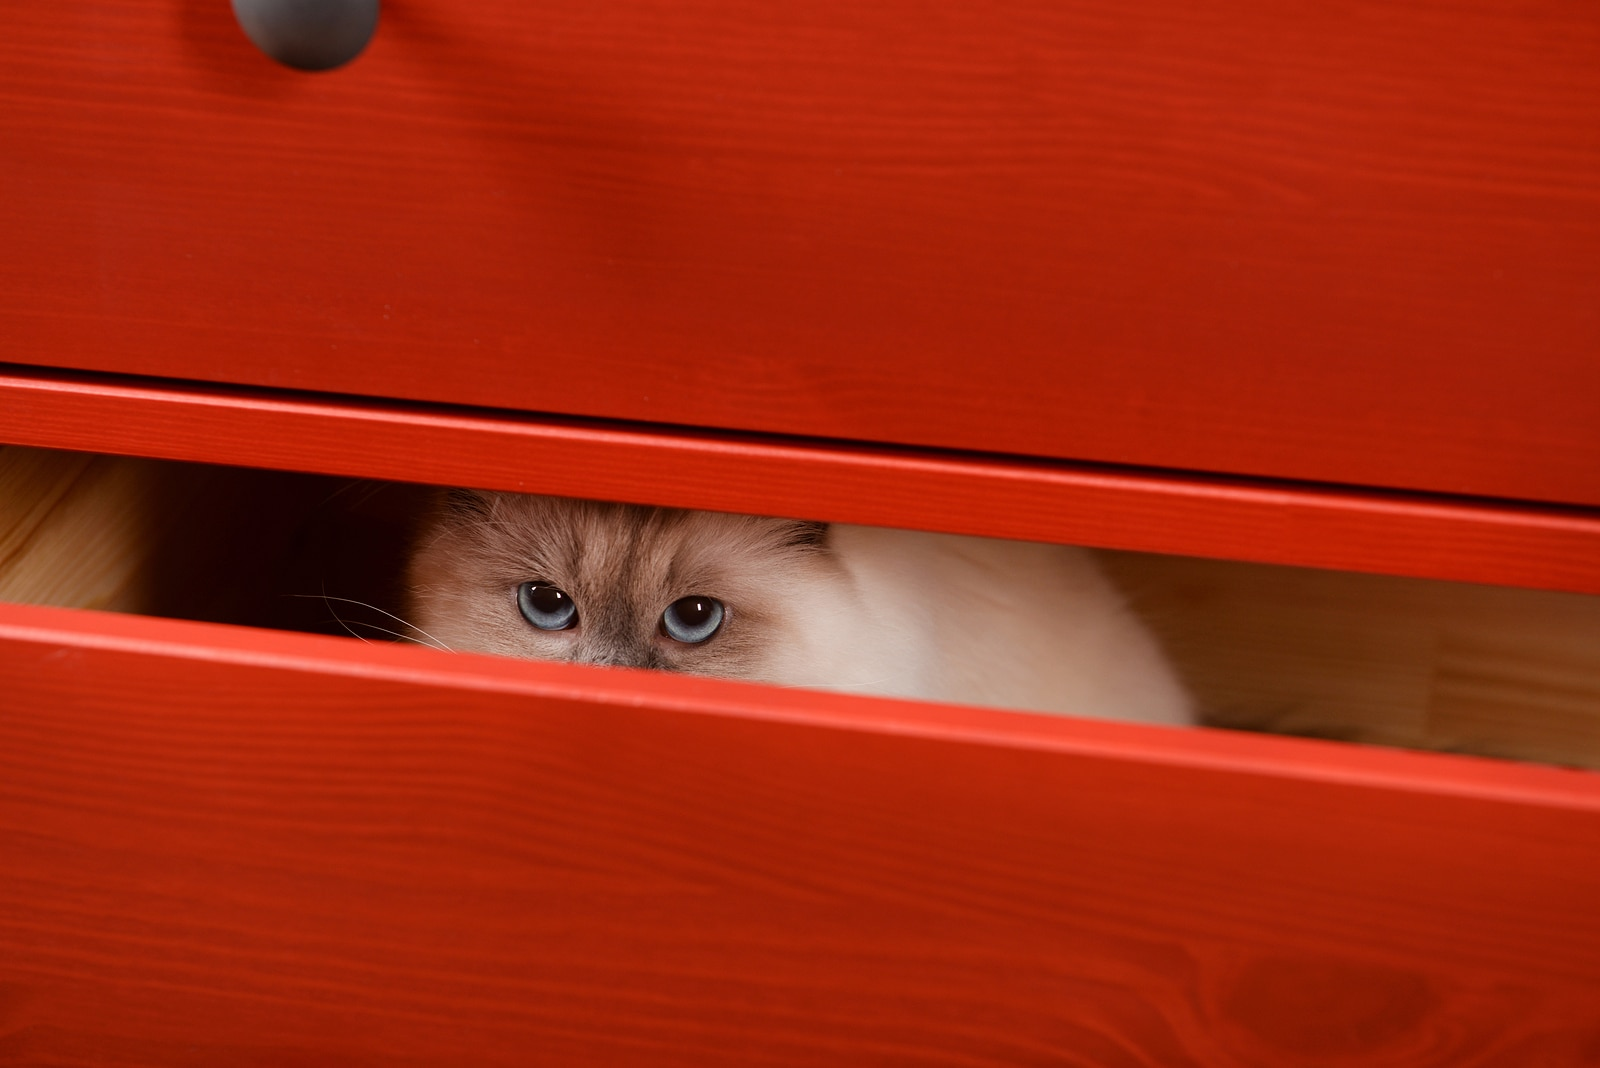 Cat with bright blue eyes hides in red wood drawers.